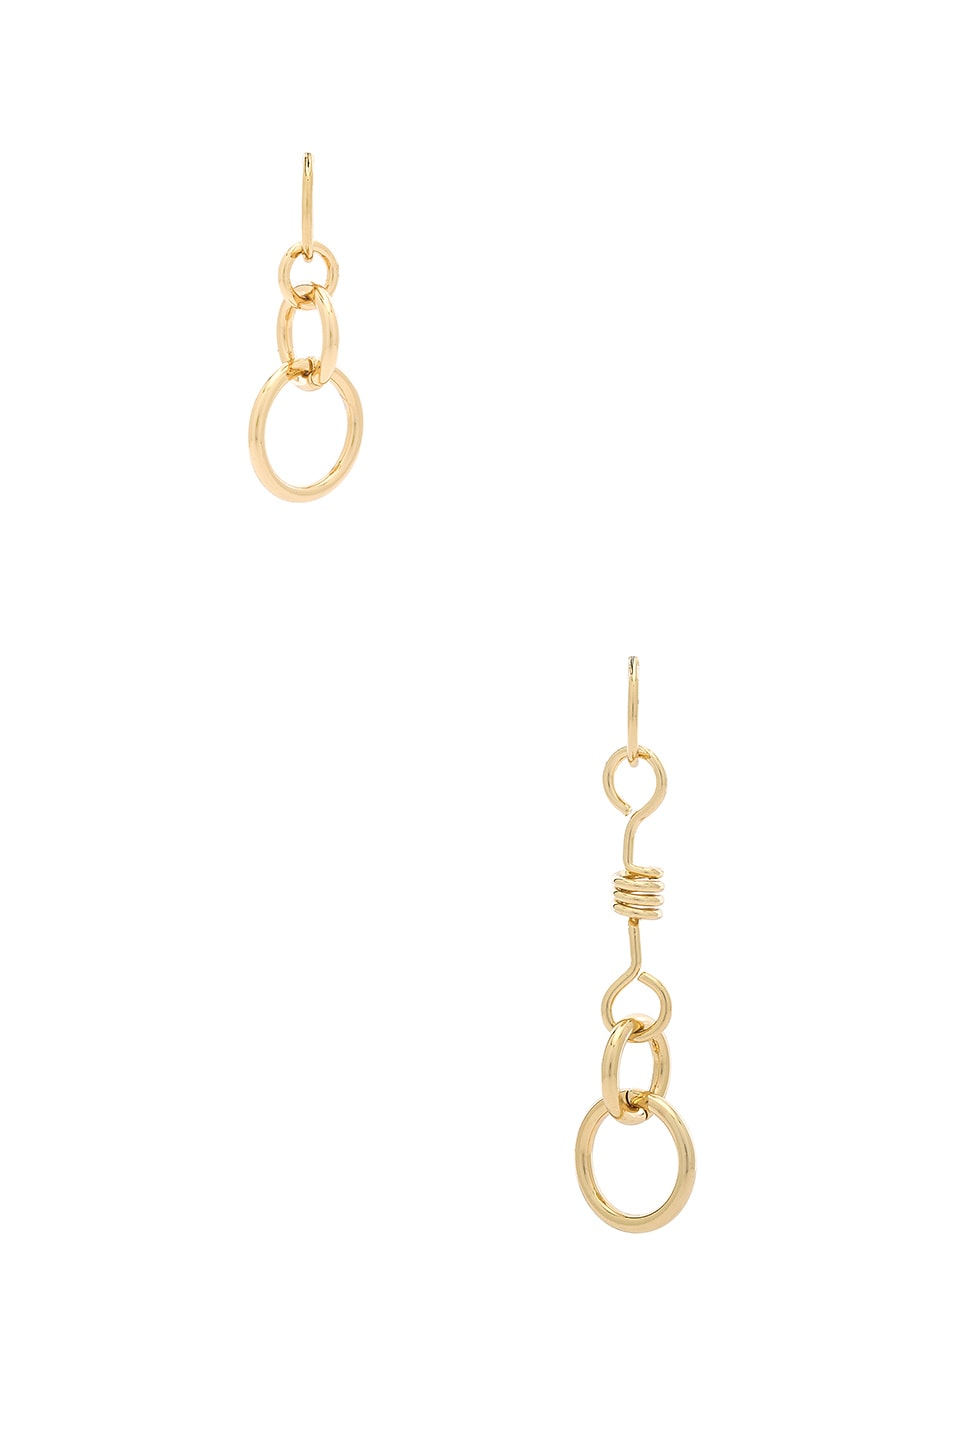 Rebecca Minkoff Mismatched Twisted Links Earrings in Gold